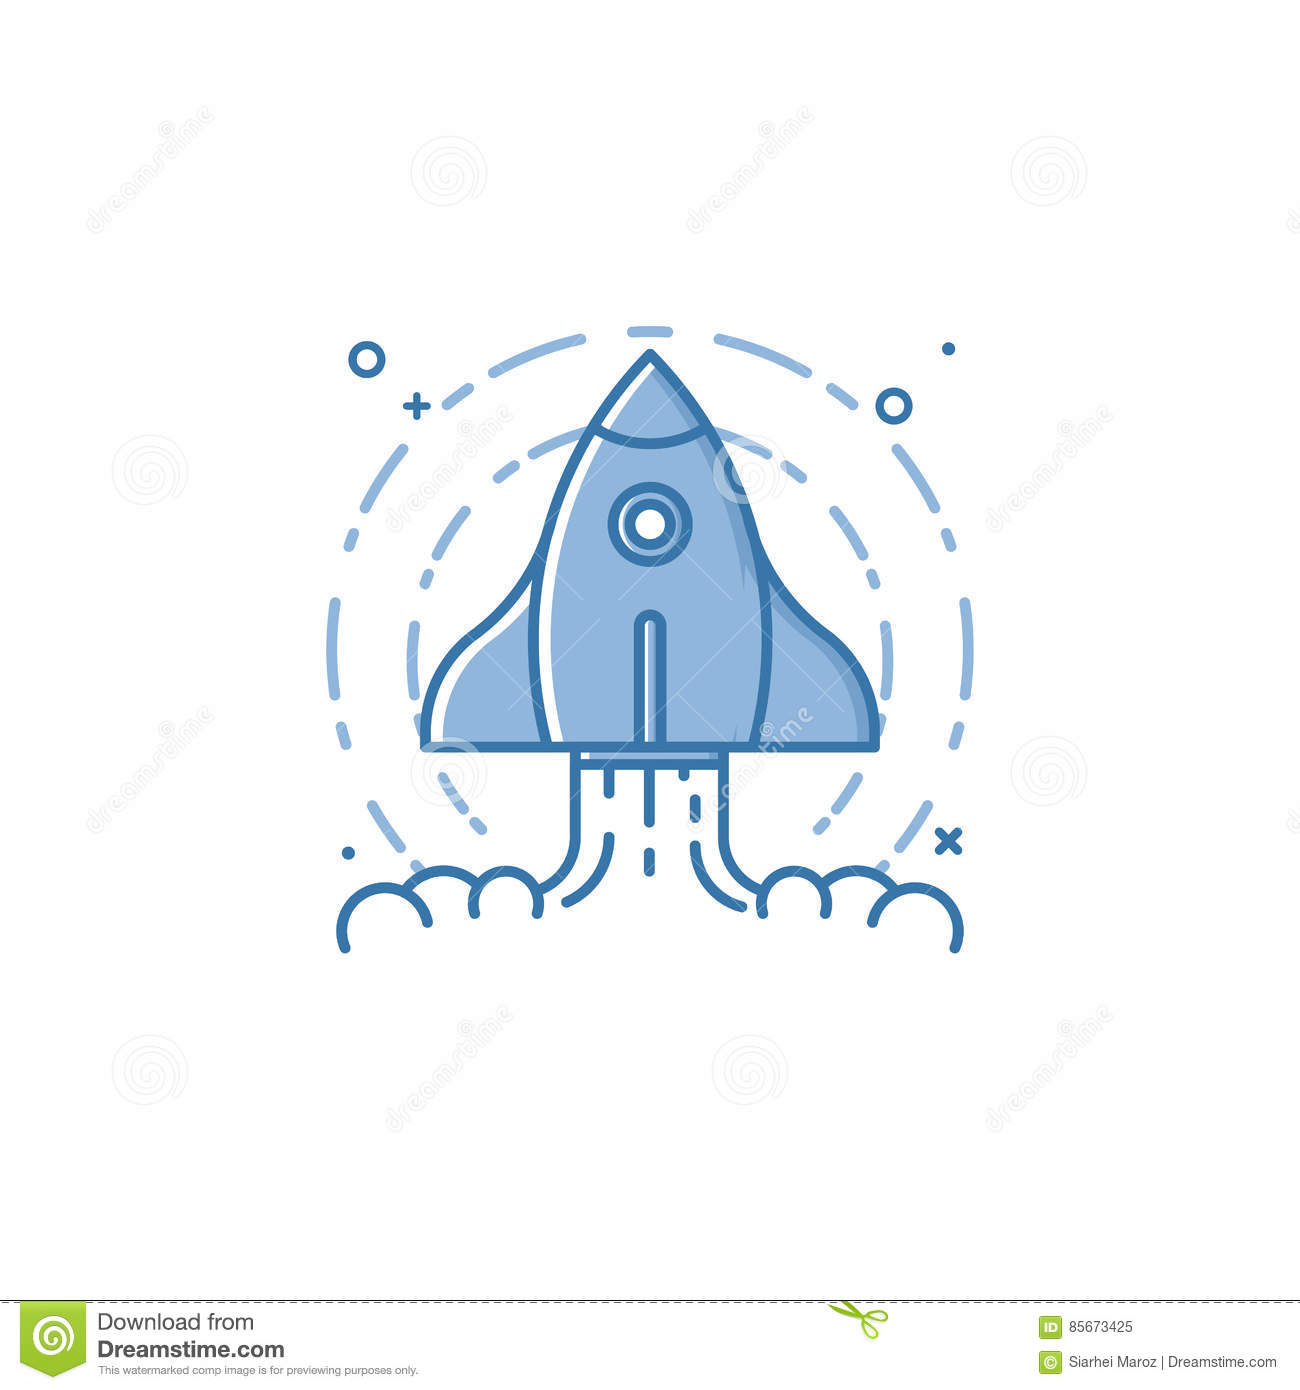 Rocket ship diagram free download wiring diagram of blue colors rocket ship icon in vector business illustration of blue colors rocket ship icon in outline style rocket ship jobs diagram rocket stages pooptronica Images